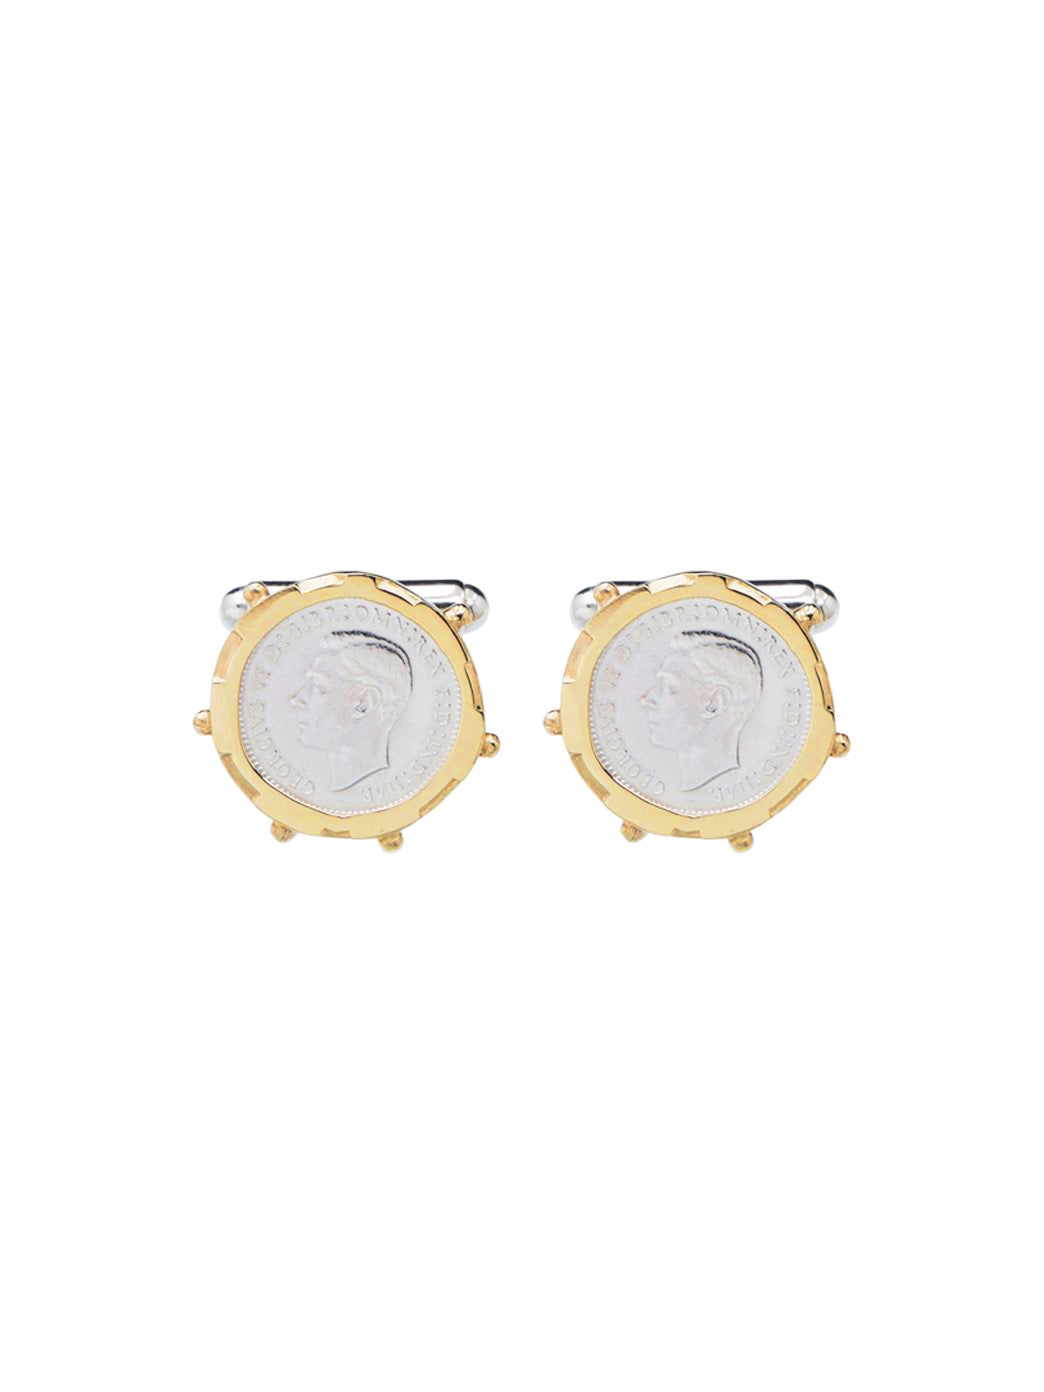 Fiorina Jewellery 3p Gold Encased Cufflinks